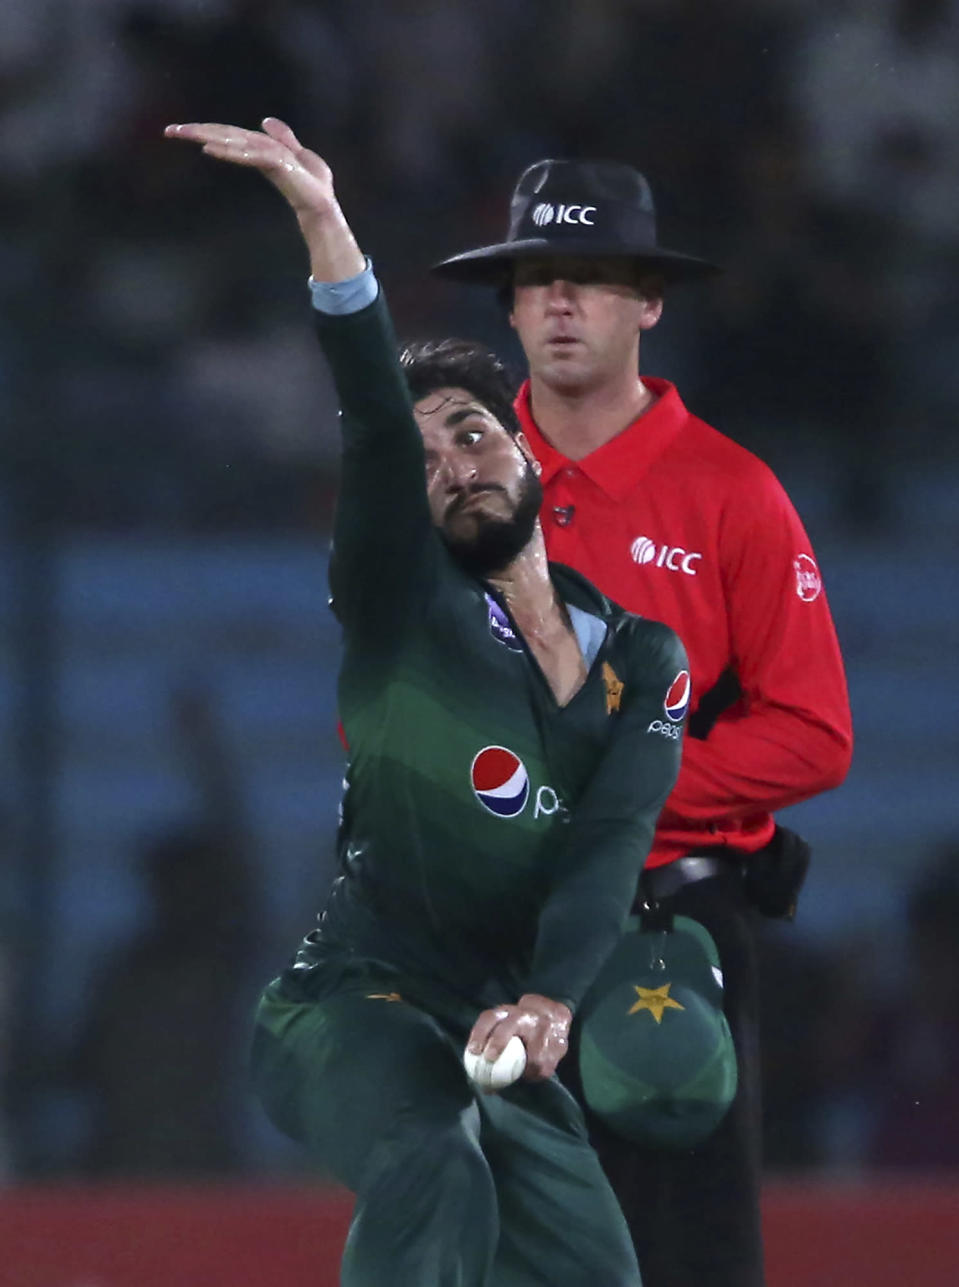 Pakistan's Usman Shinwari bowls to Sri Lankan batsman during the second one-day international in Karachi, Pakistan, Monday, Sept. 30, 2019. (AP Photo/Fareed Khan)